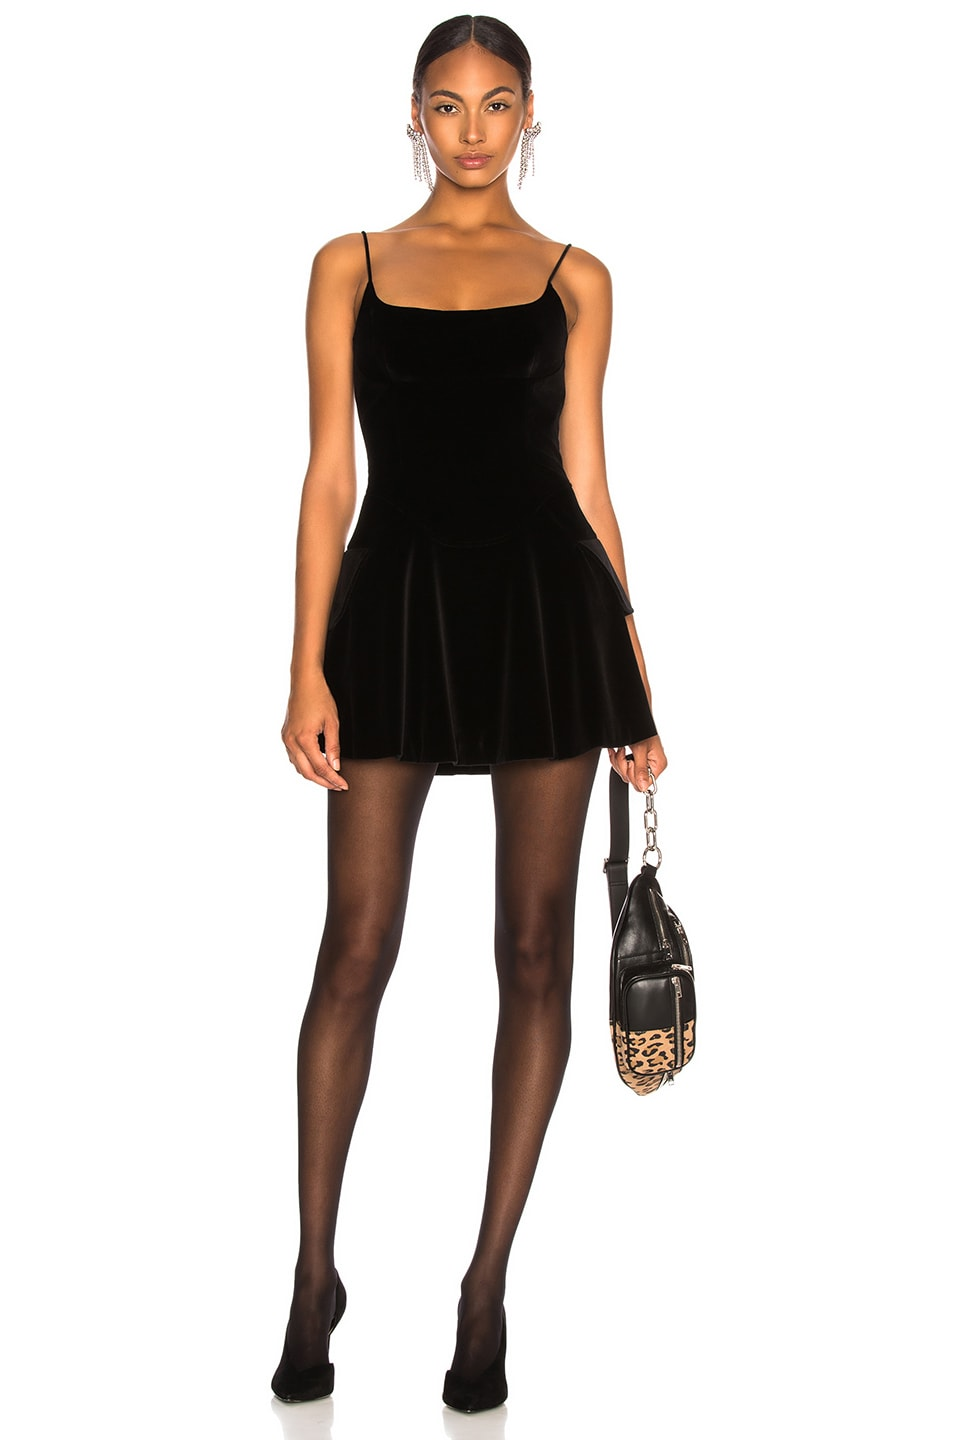 2cc2d180ad6 Image 1 of Alexander Wang Velvet Fit and Flare Mini Dress in Black